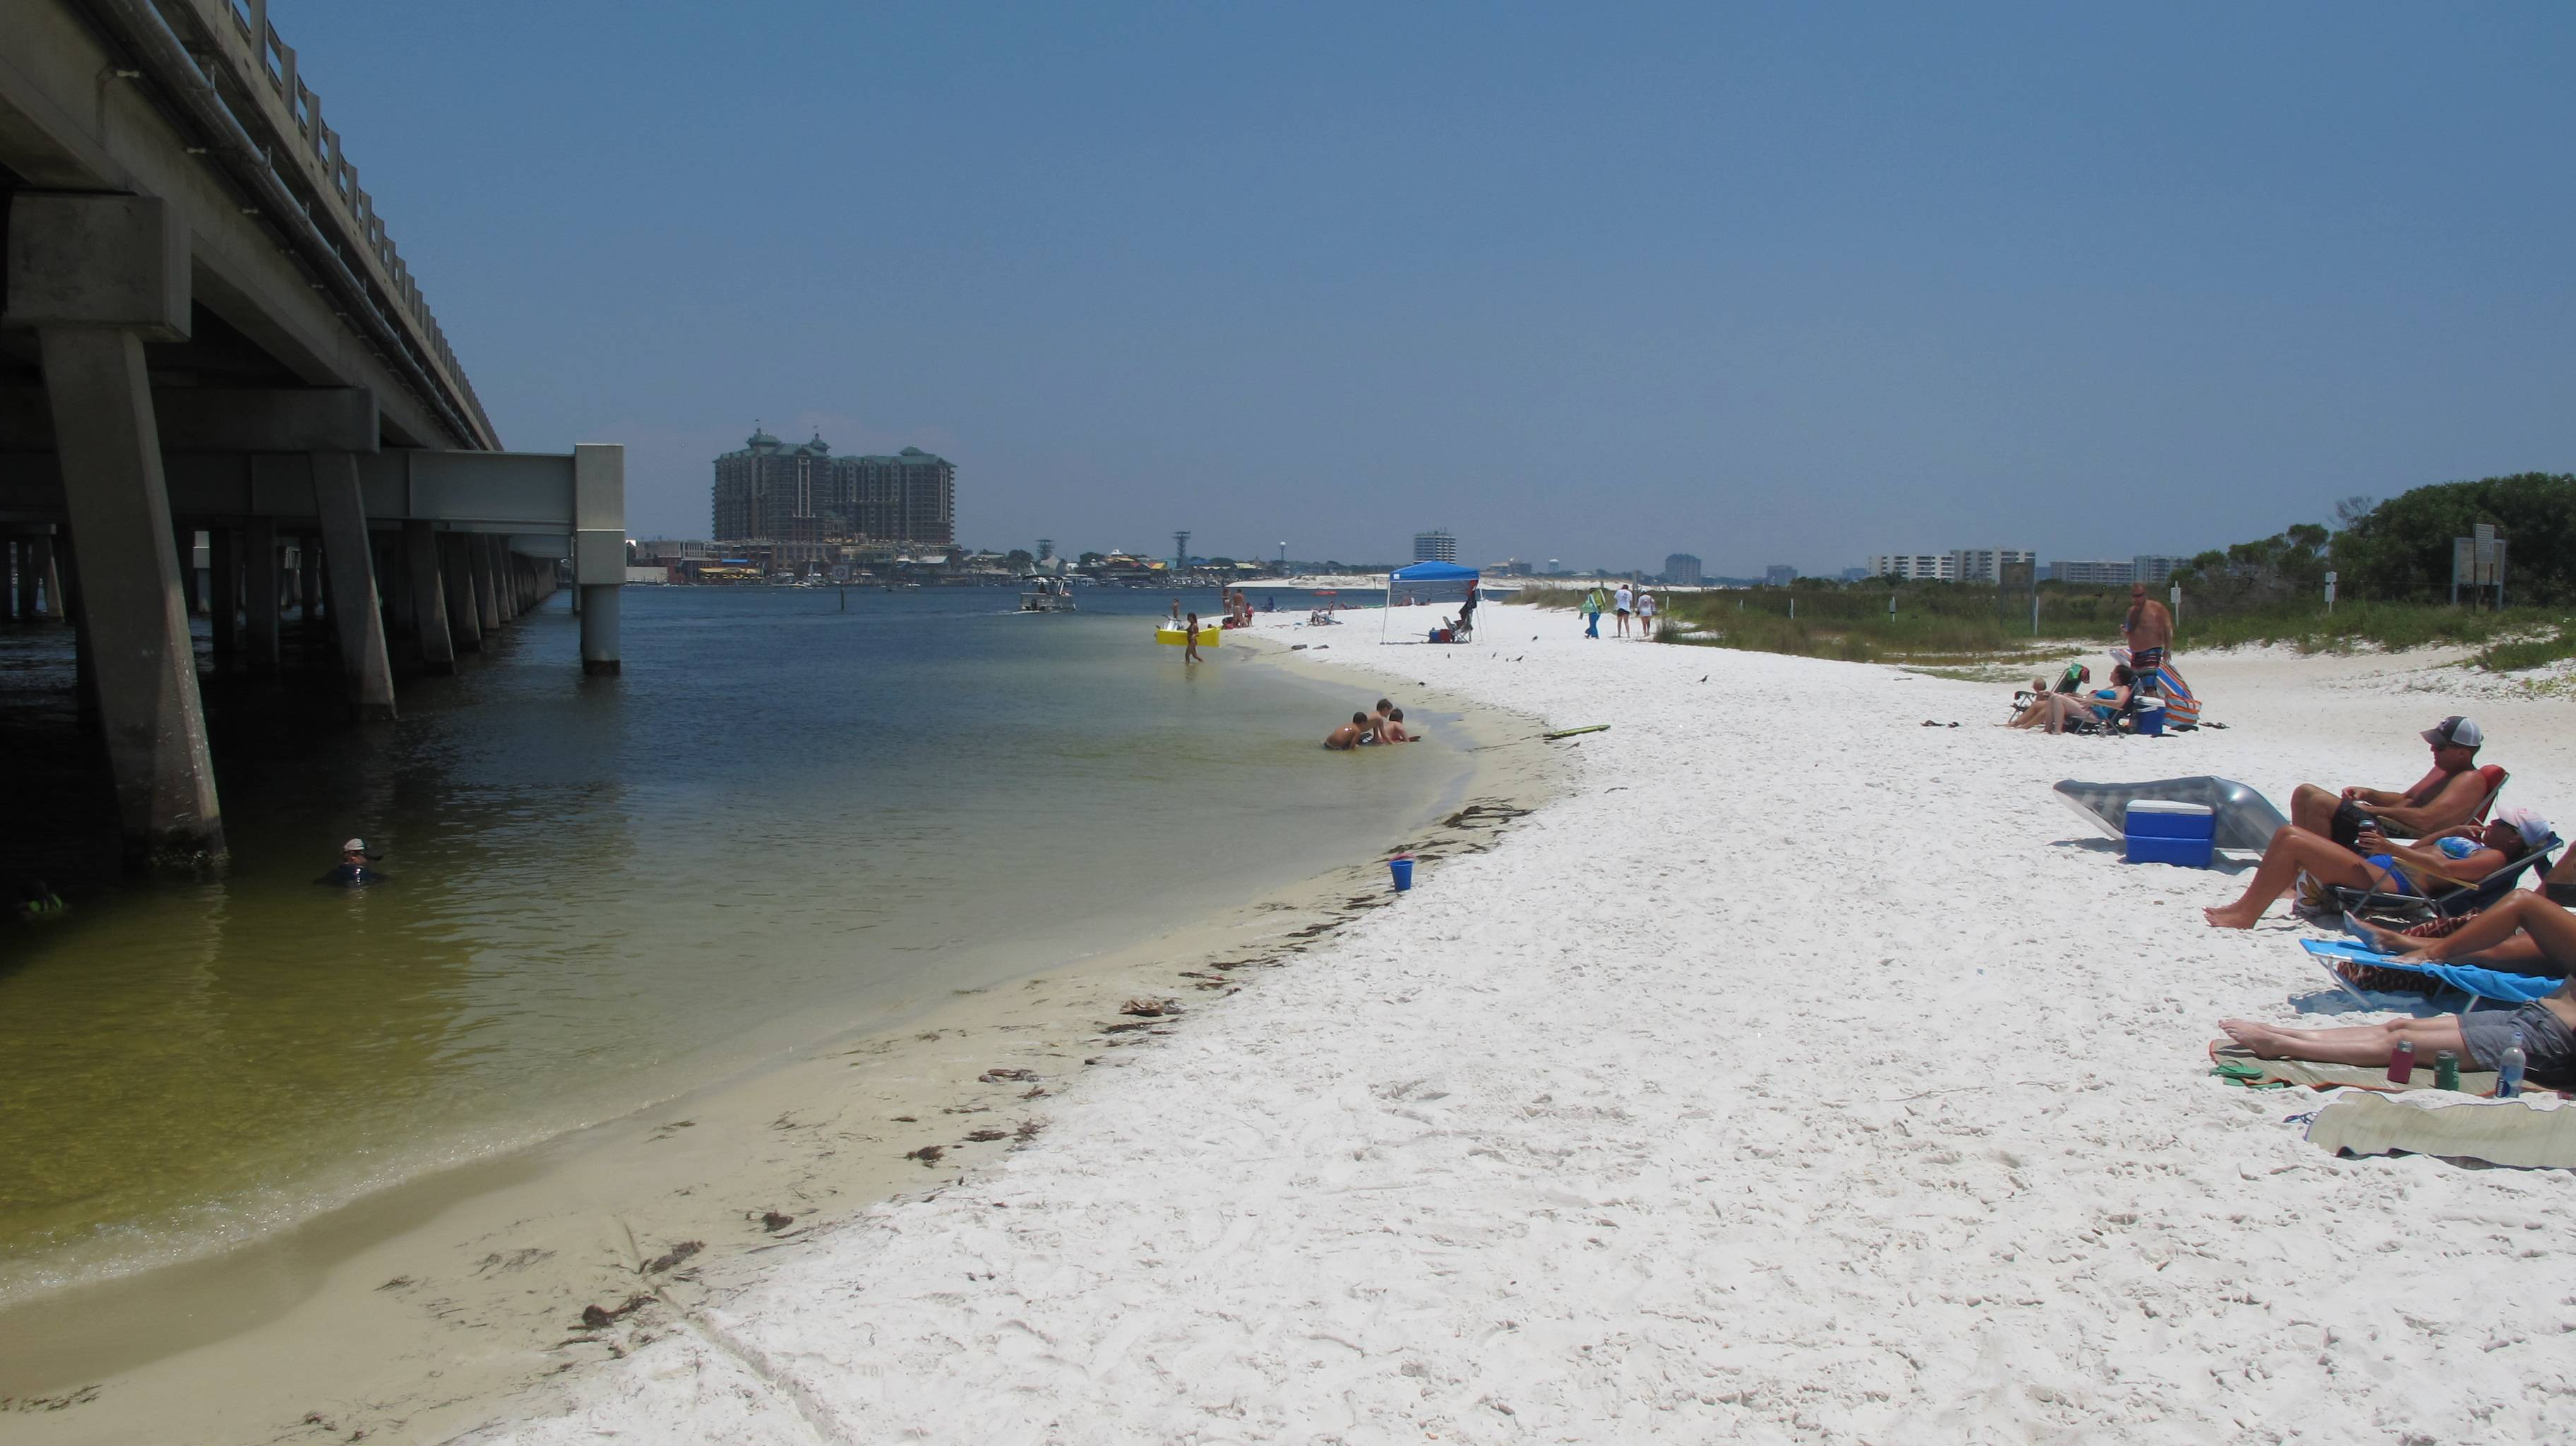 Beachgoers enjoy the shallow beach under a highway bridge in Destin, Fla. The beach is under the control of Eglin Air Force Base where it is occasionally used to practice amphibious landings and test high-tech weapons. The public is welcome to use the beach.